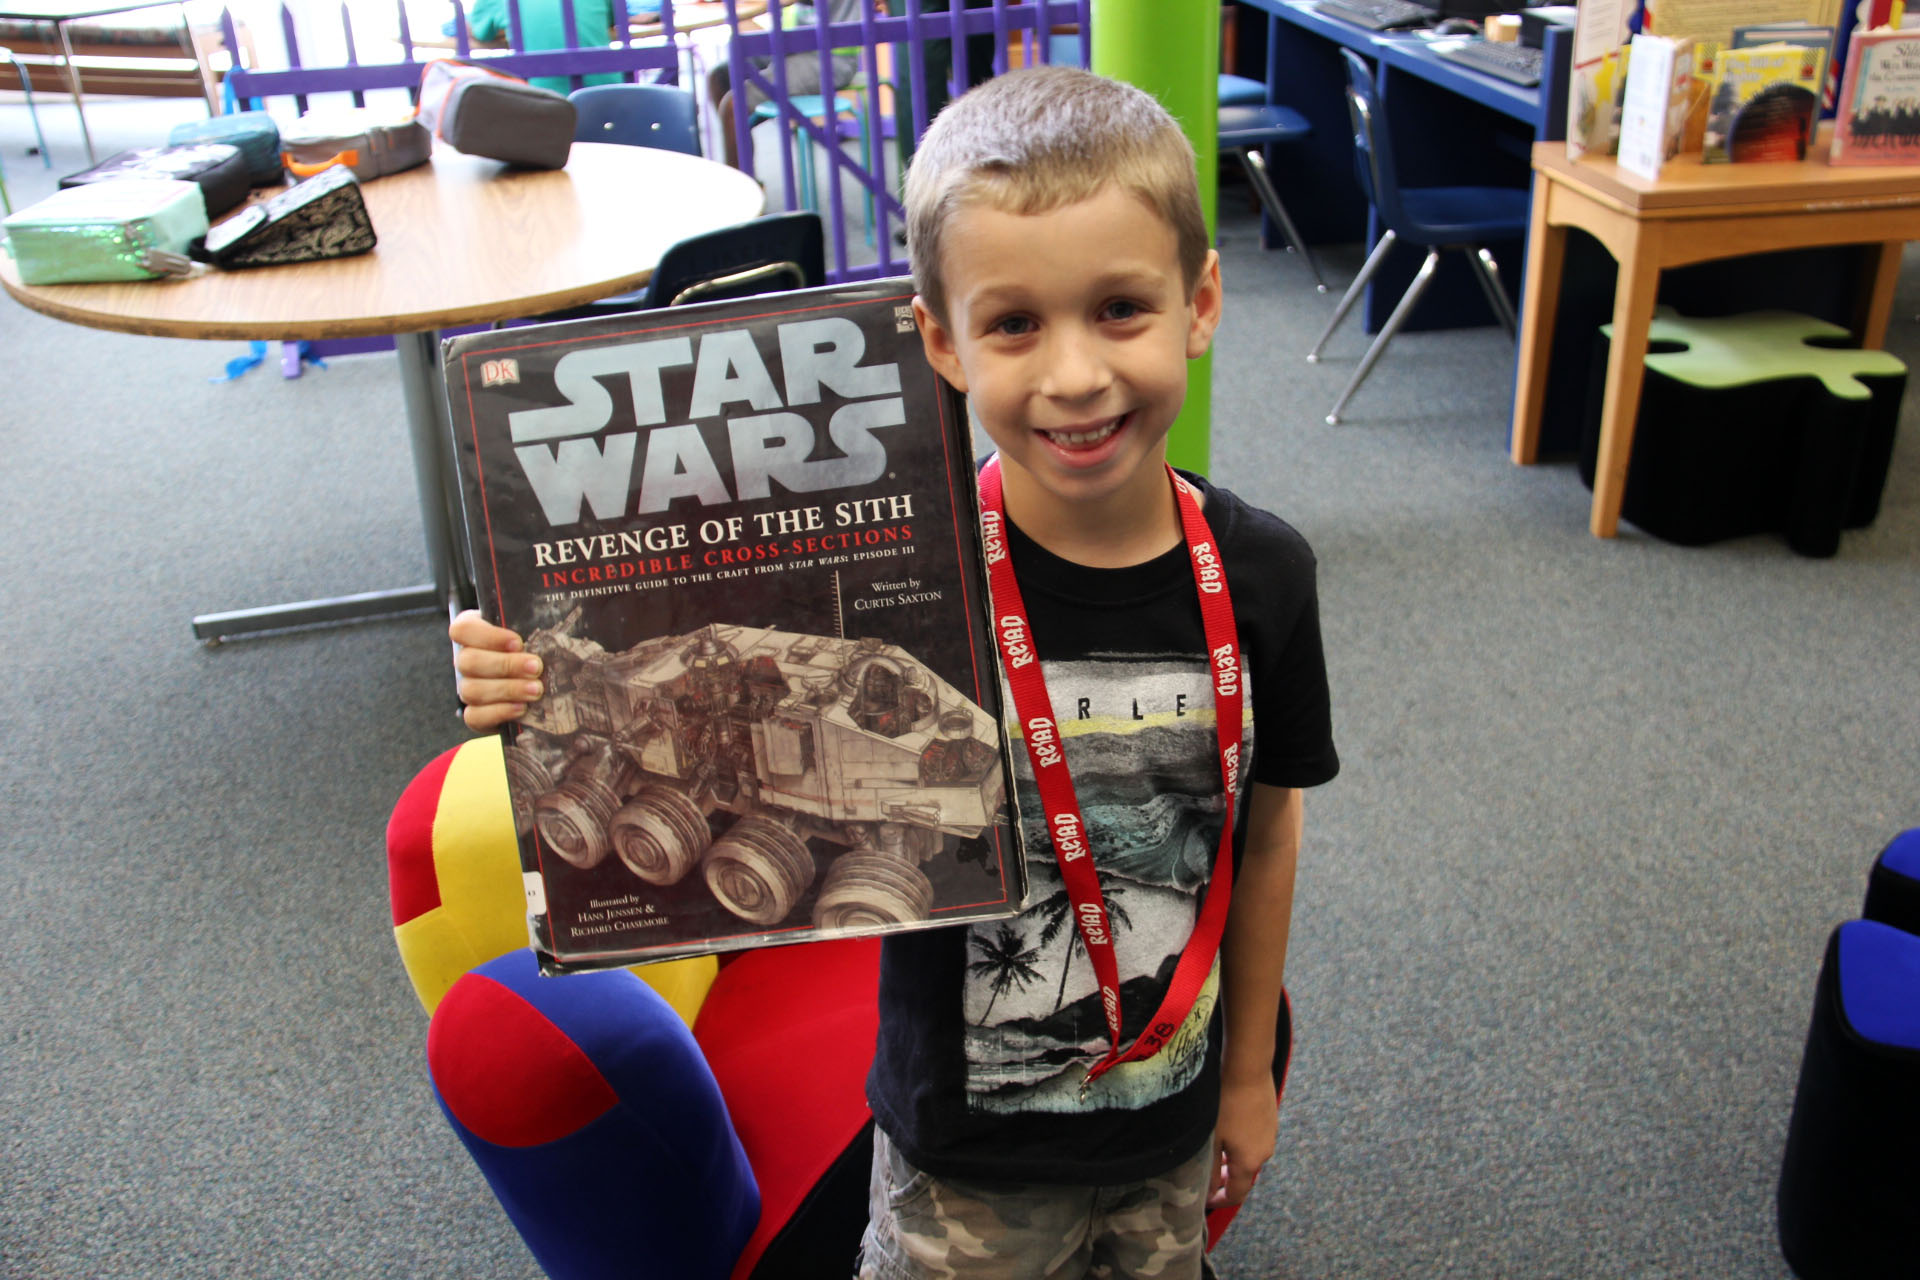 paes-boy-star-wars-book